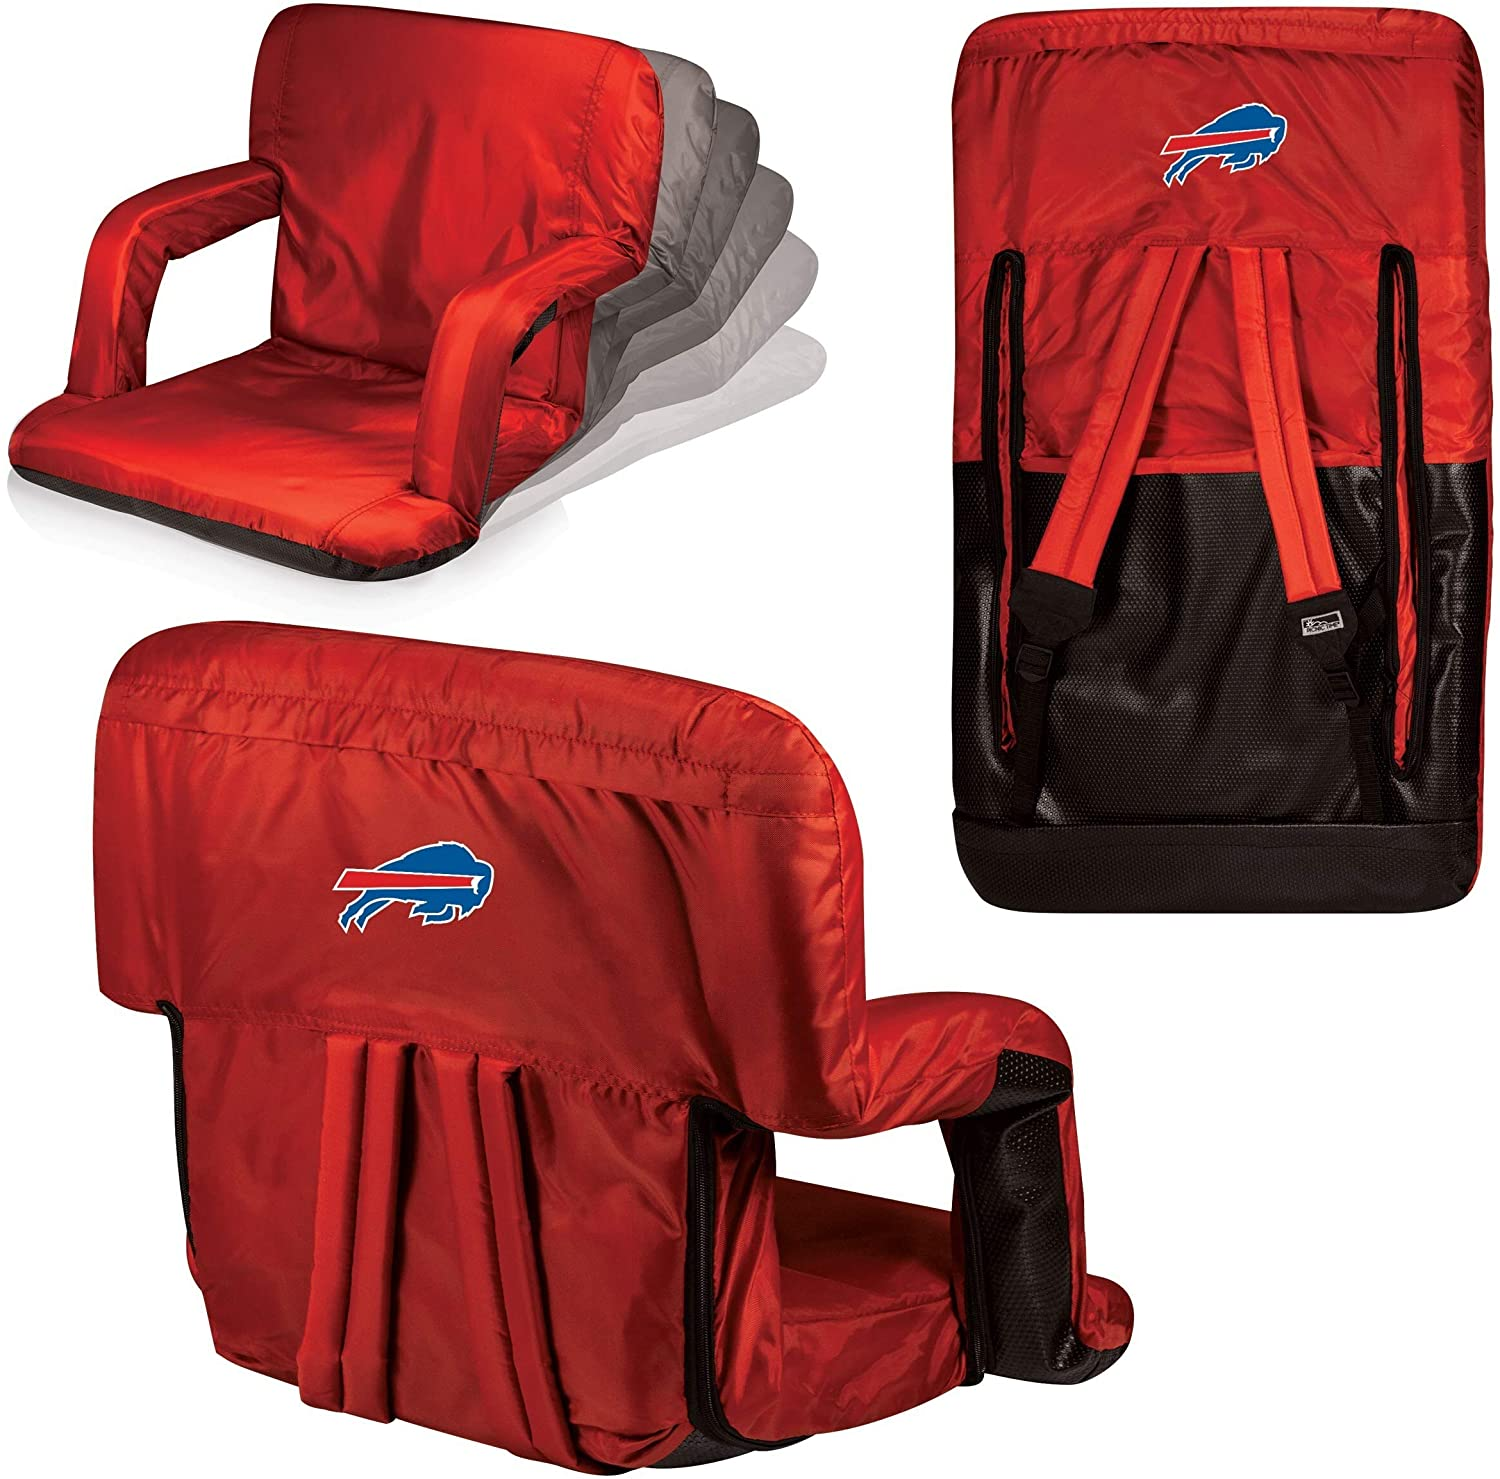 MISC Red NFL Buffalo Bills Ventura Seat Football Themed Armrests Adjustable Backpack Straps Seat Beach Pool Picnics Dorm Living Room Team Merchandise